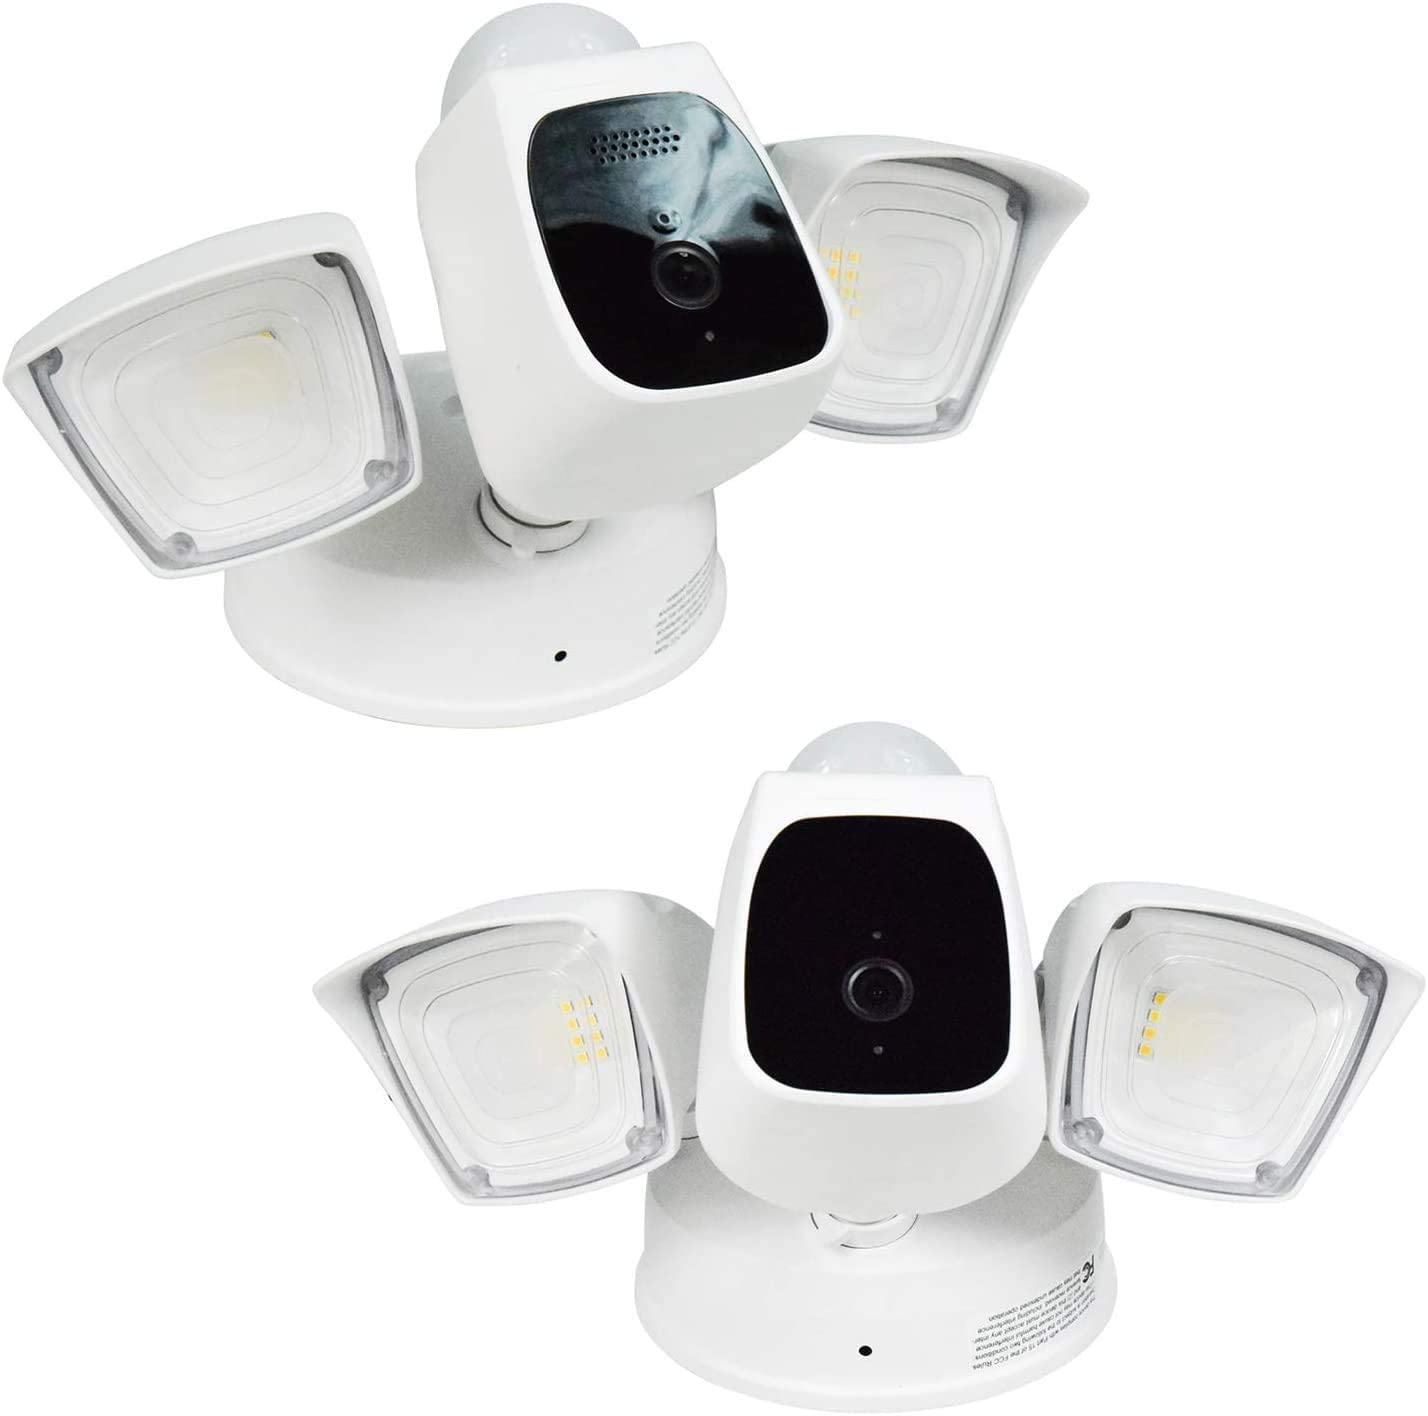 Home Zone Security Bright LED Security Flood Light with 1080p Wi-Fi Camera (2-Set)